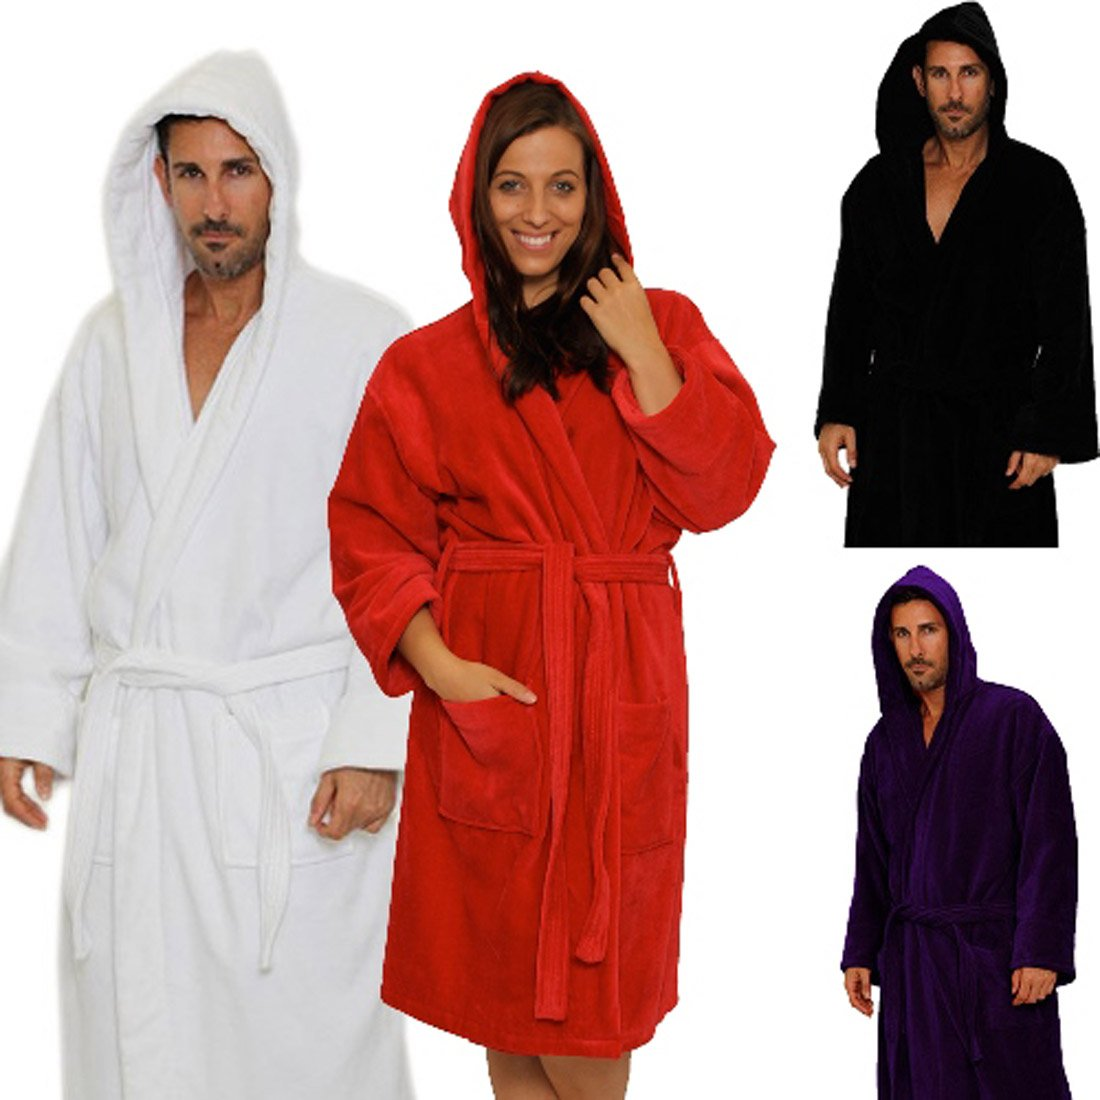 Terry Velour Hooded Bathrobe %100 Cotton Men's Women's Robe Best Gift for Her